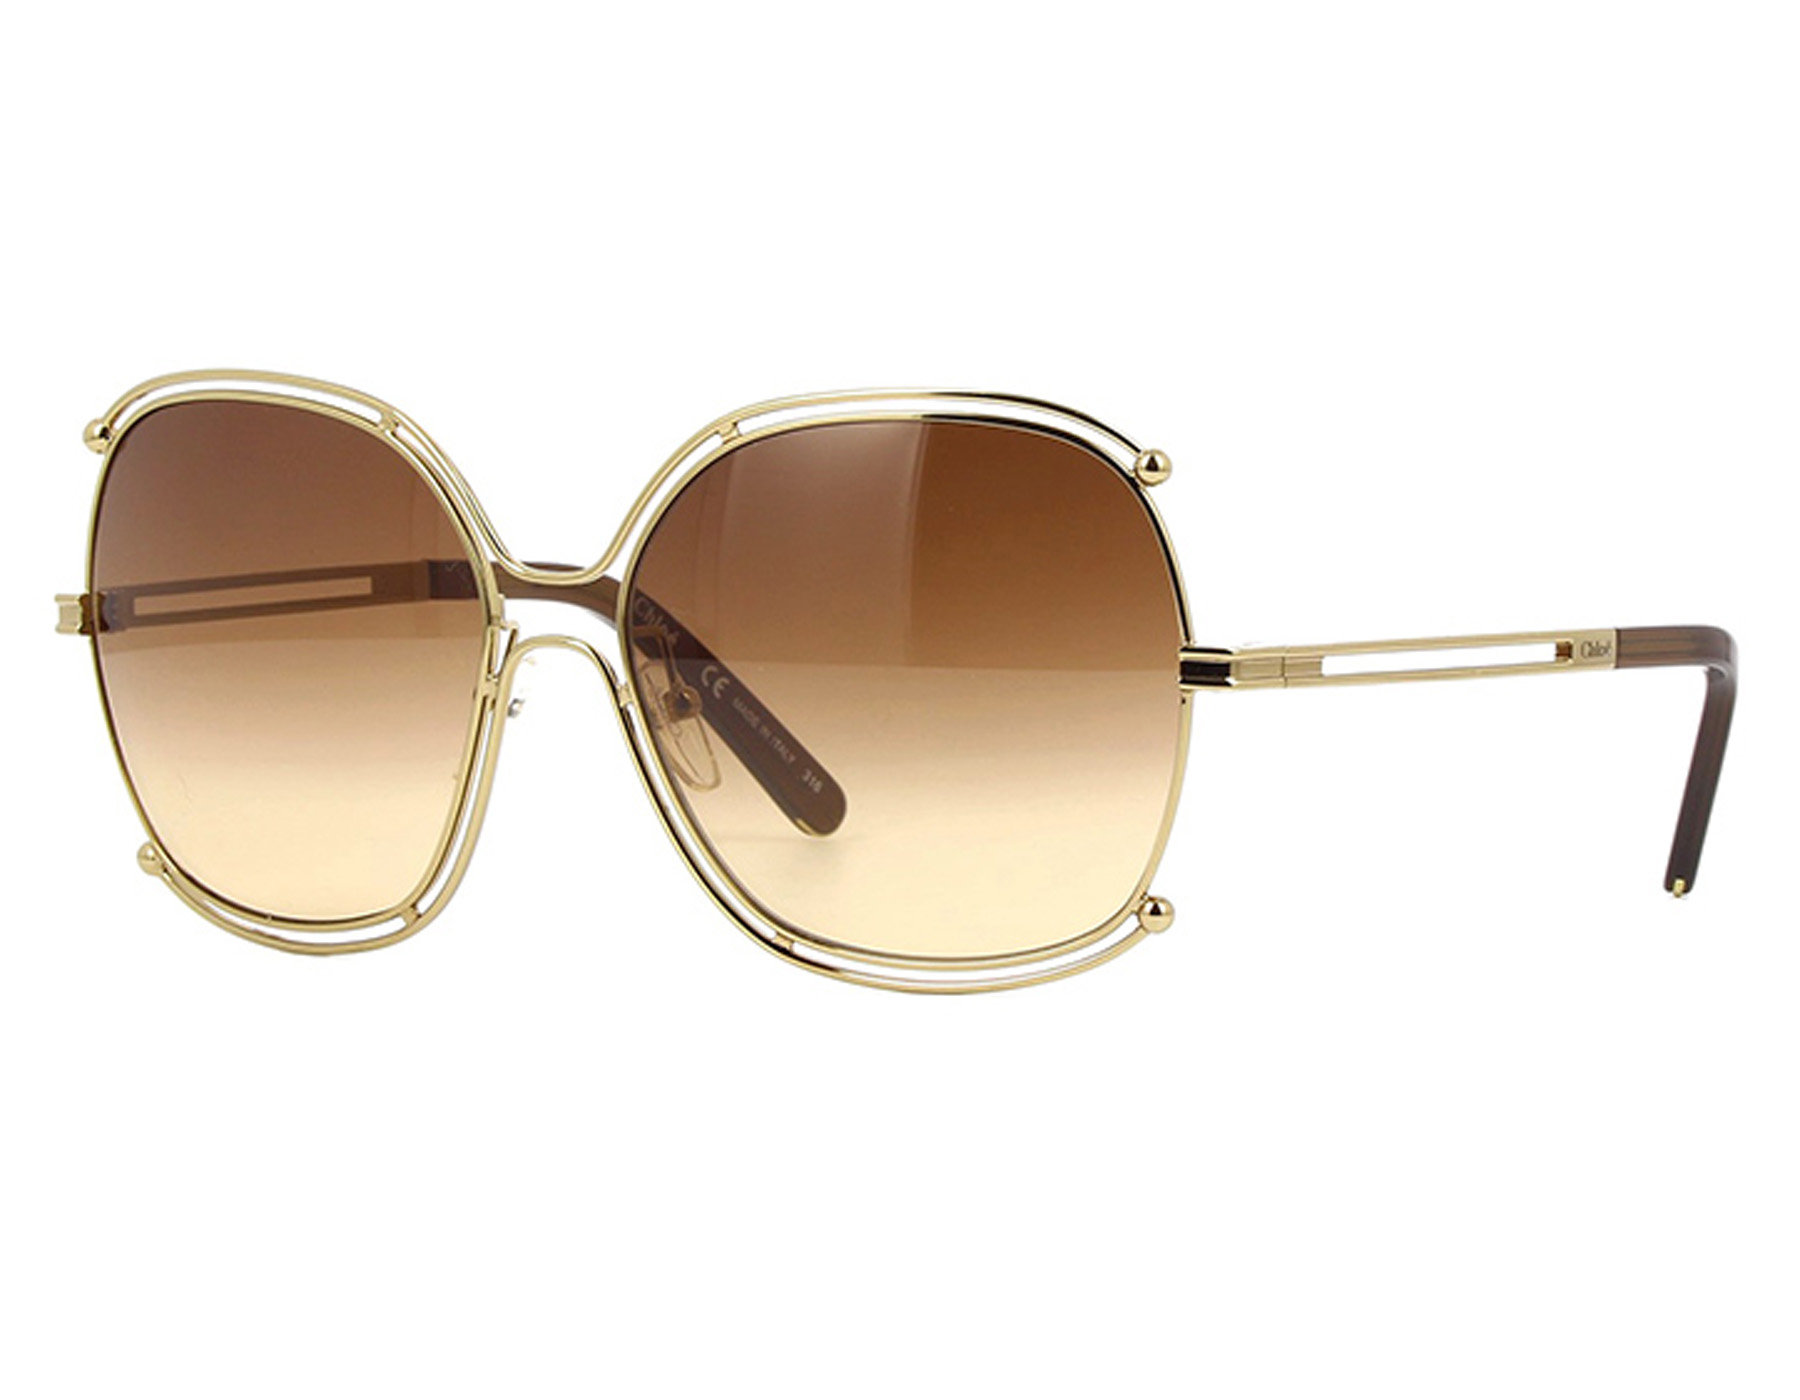 2a614be3d4 Details about NEW Chloe CE129S-784-5916 CE129S-784-5916 Gold Transparent  Brown Sunglasses